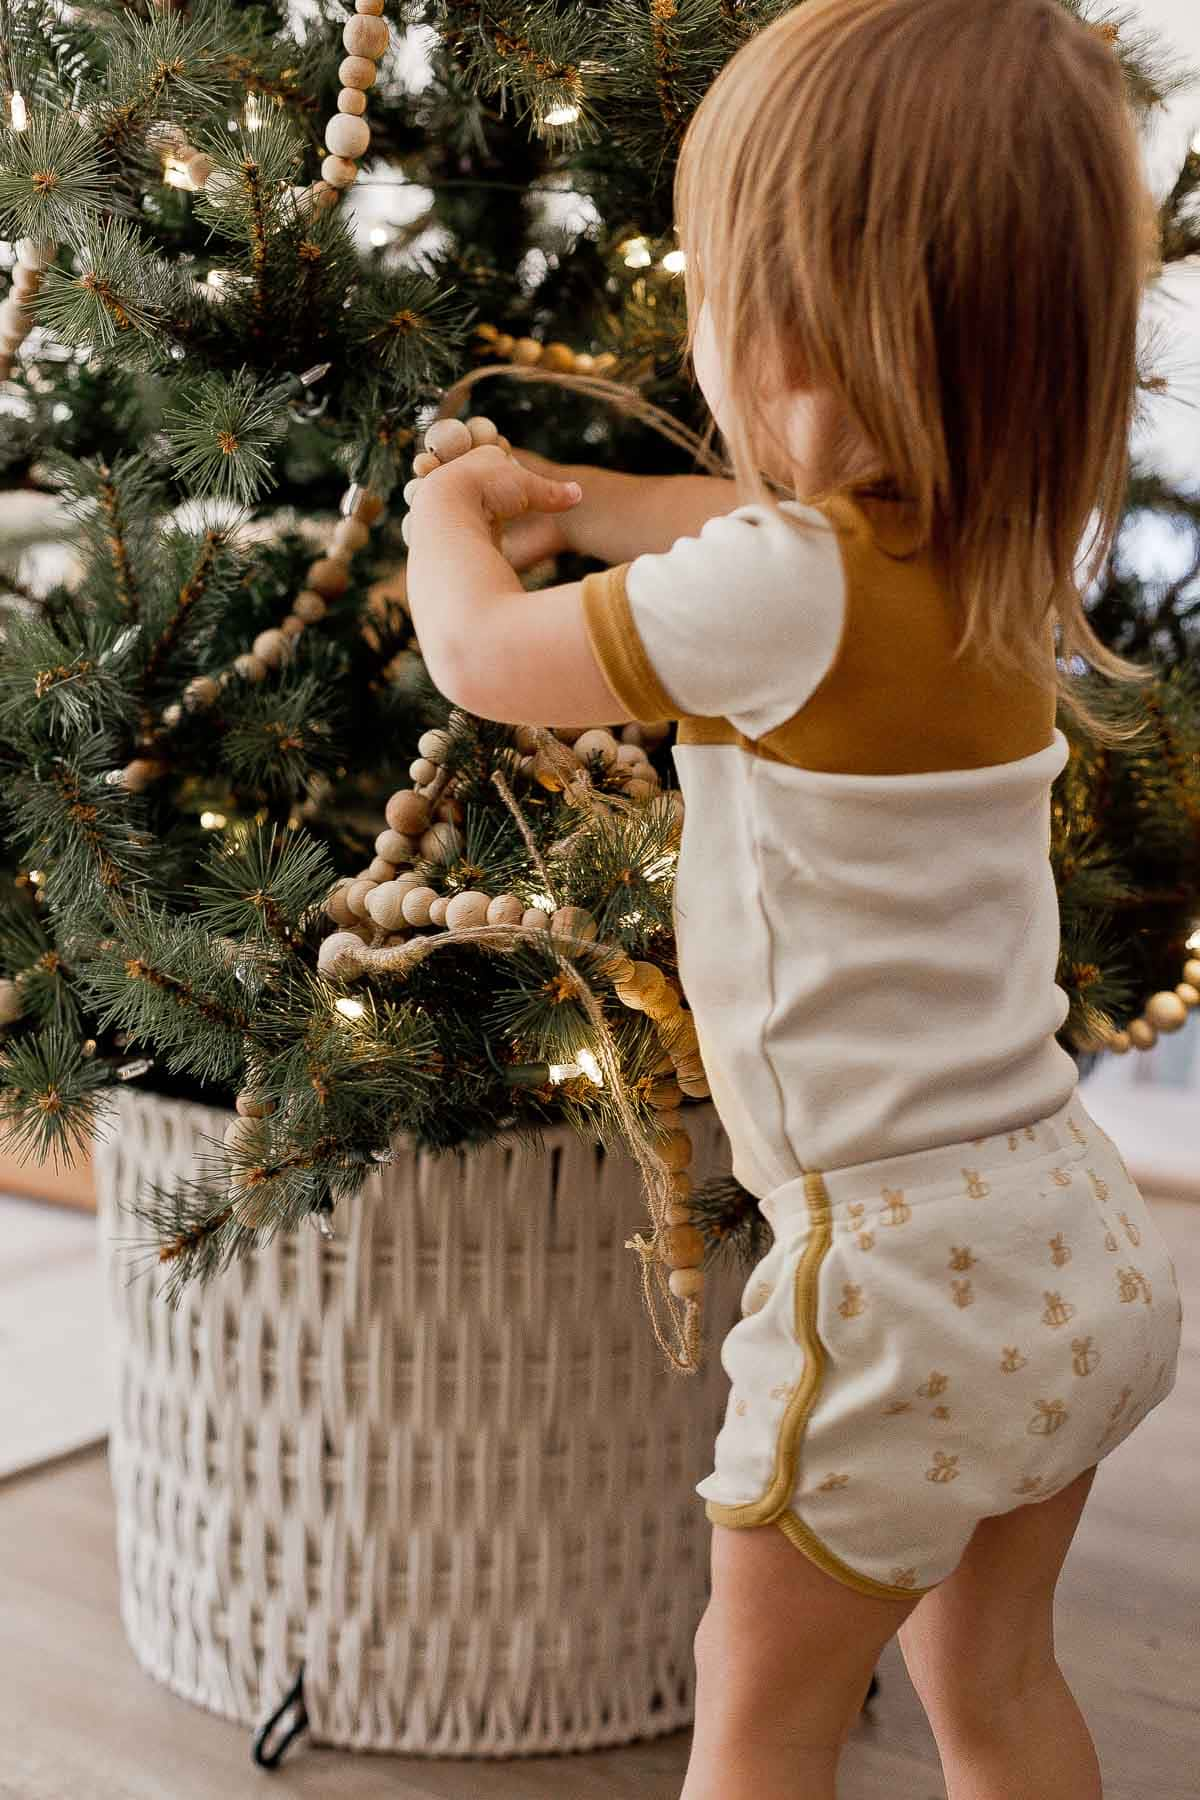 Child decorating a Christmas tree with wood garlands.